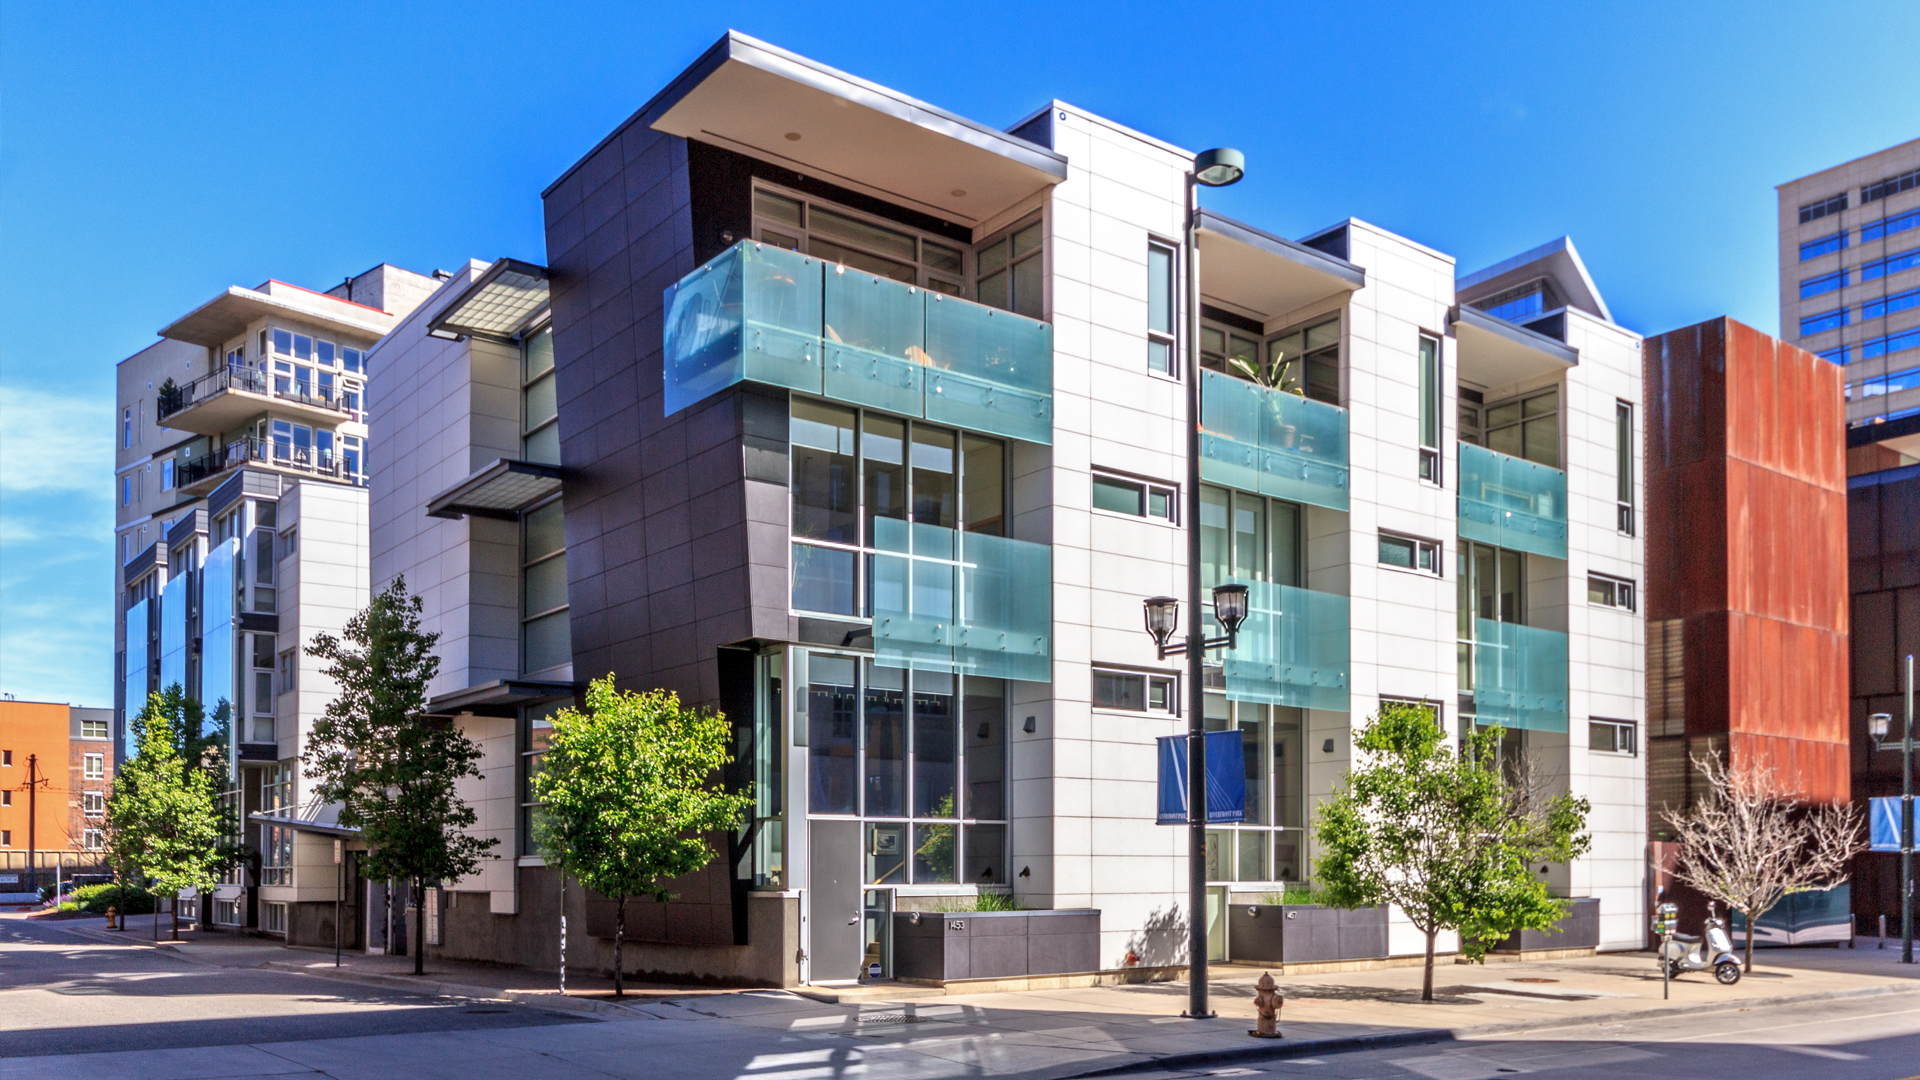 <p>With 13 upscale townhomes, the Museum of Contemporary Art and a 65-unit affordable housing project, The Art House project shares the same DNA as the museum itself.</p>